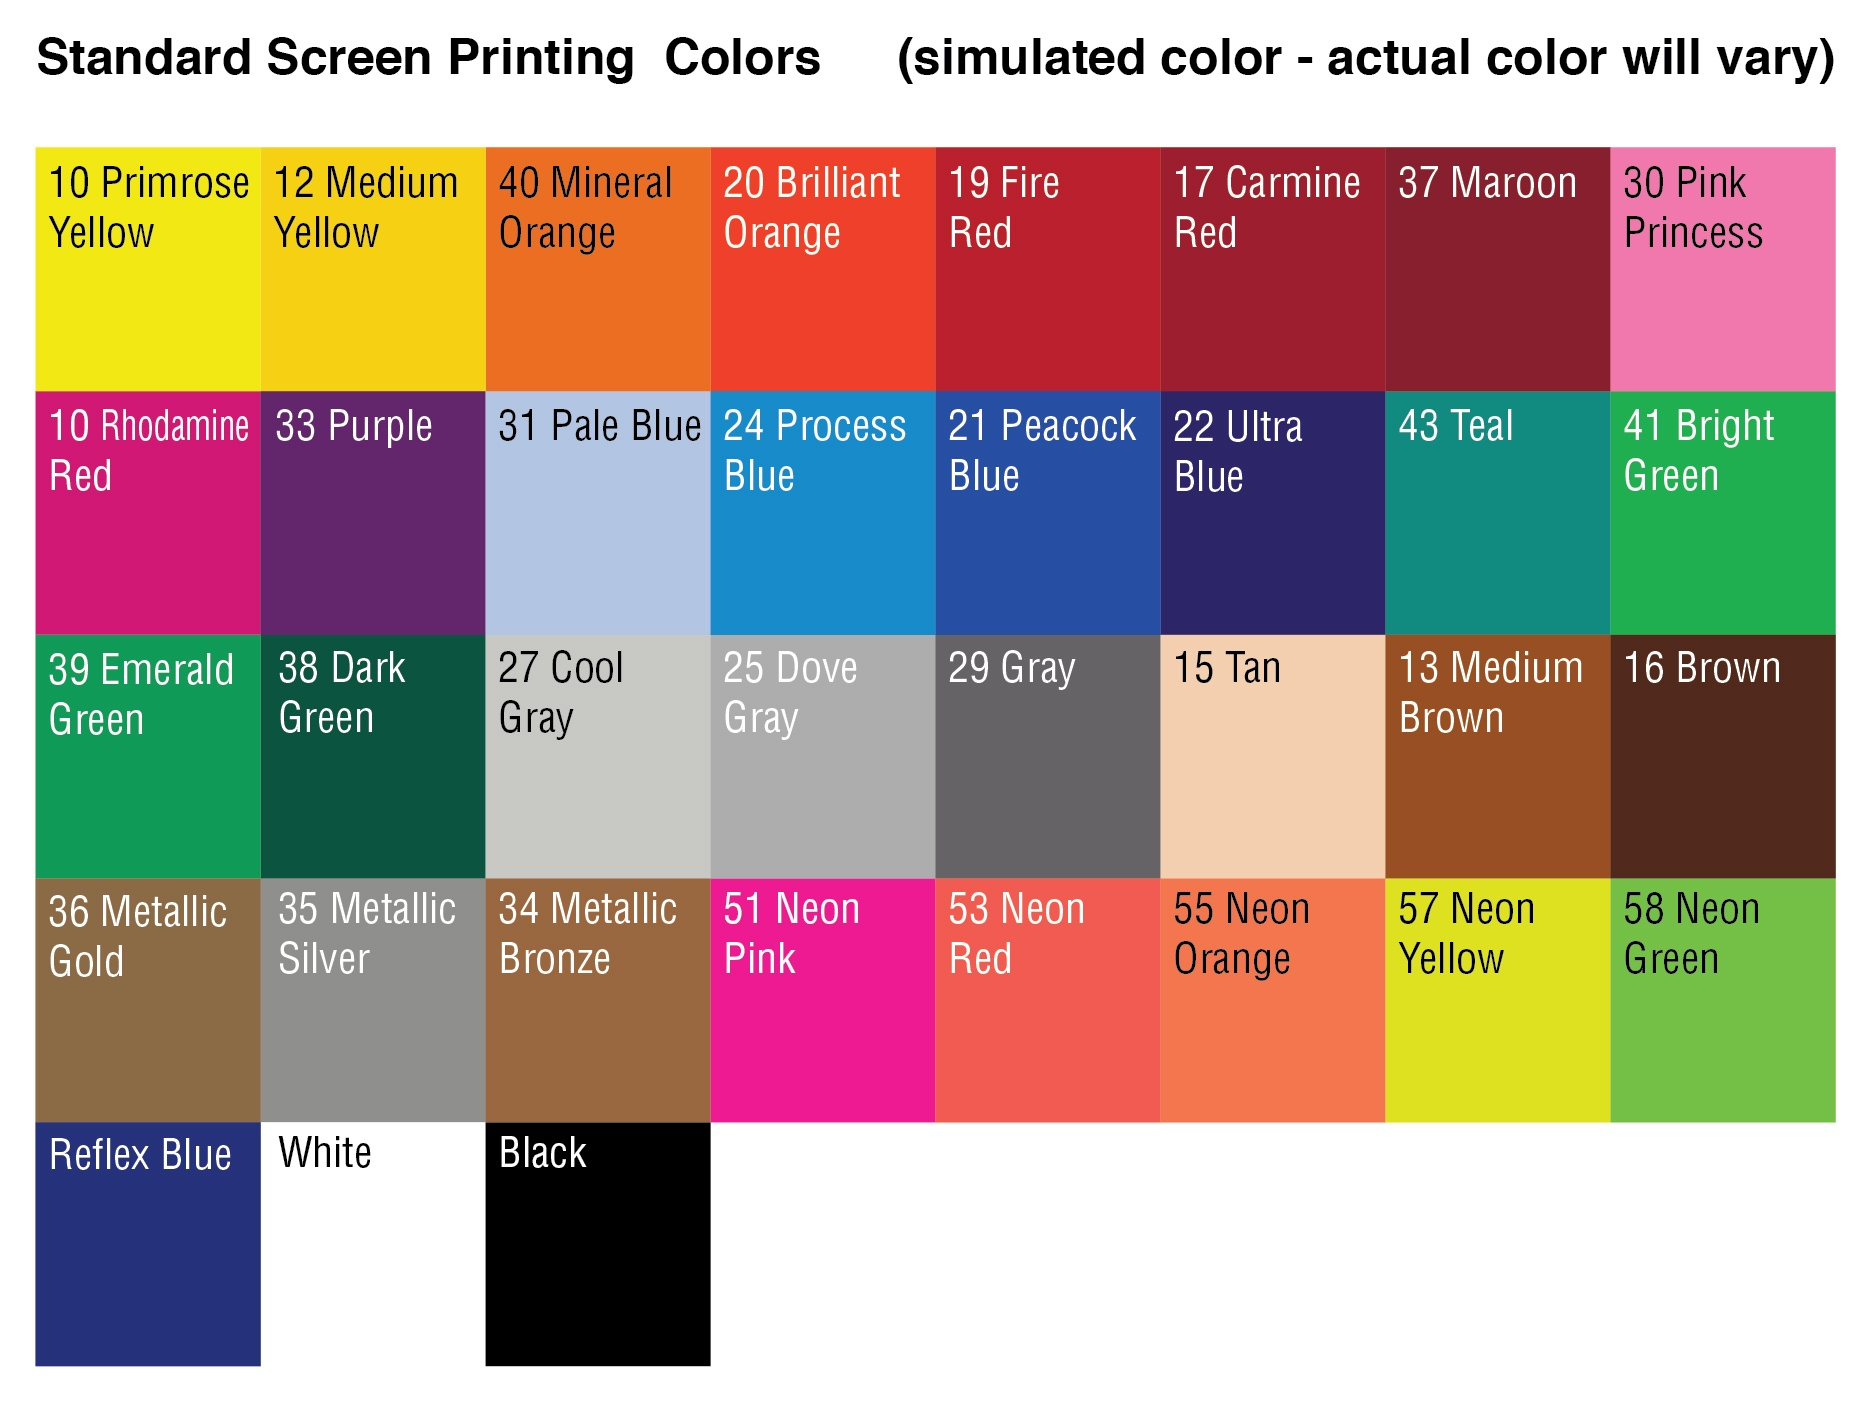 silk-screen-printing-colors-chart.jpg